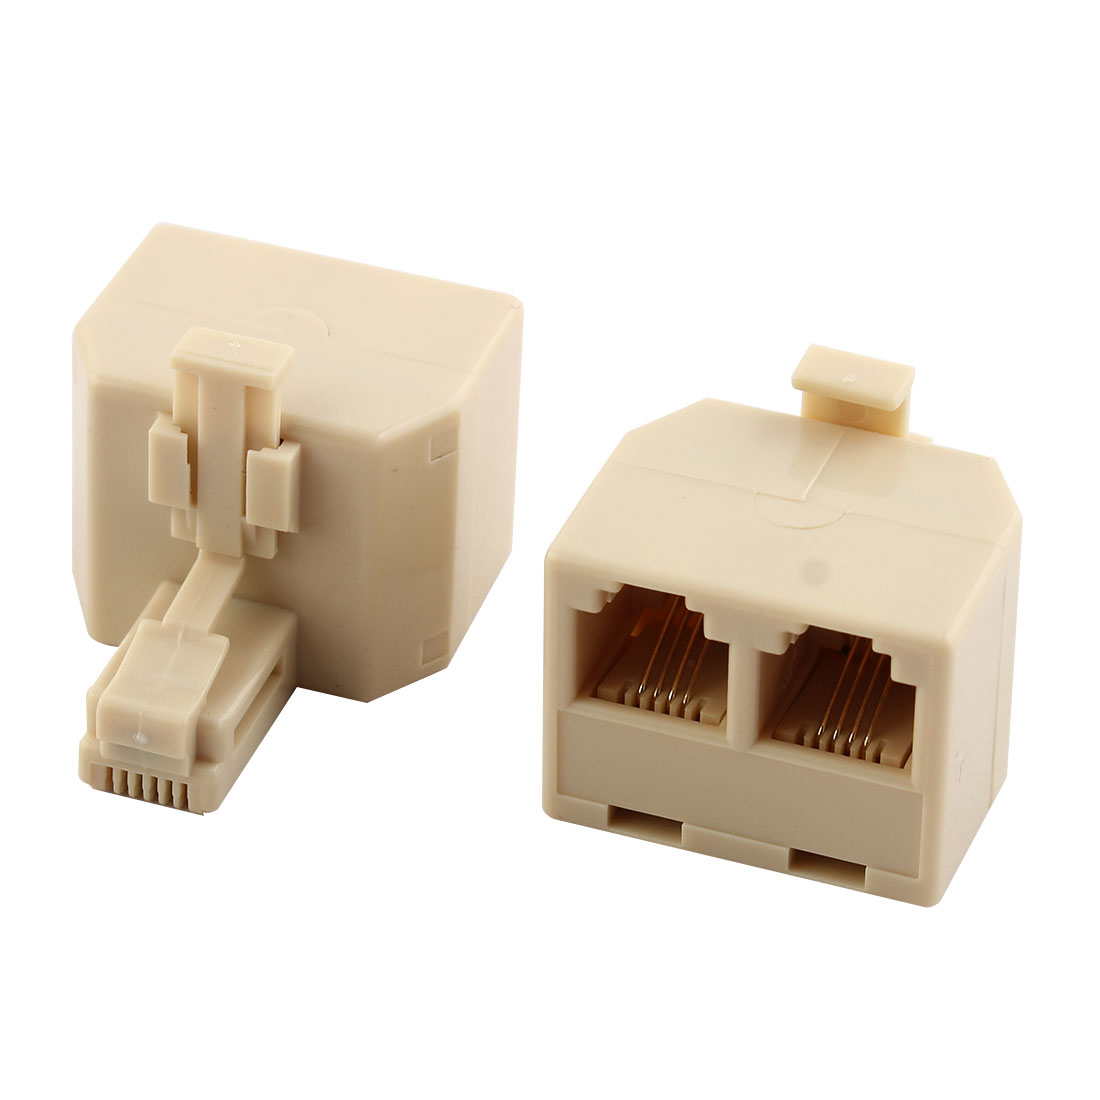 Plastic RJ11 1 Male to 2 Female Cable Cord Line Adapter Connector Splitter 2 Pcs